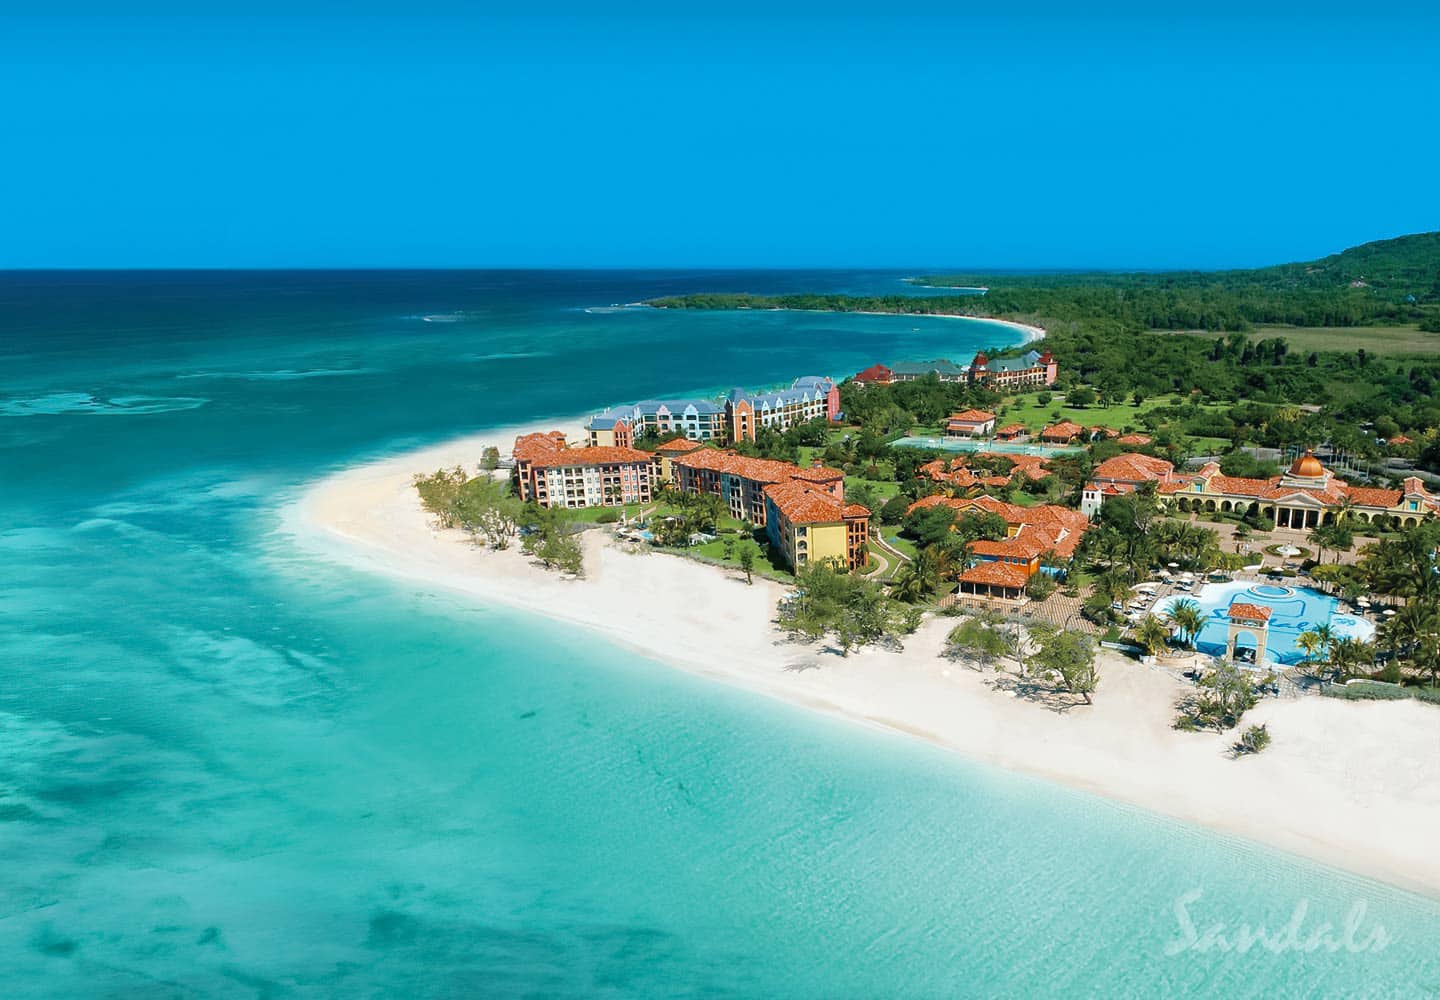 birdeye view of Sandals Whitehouse , now Sandals South Coast in Jamaica, an all inclusive resort, bookings available with Sandals travel agent Southern Travel Agency Augusta, GA